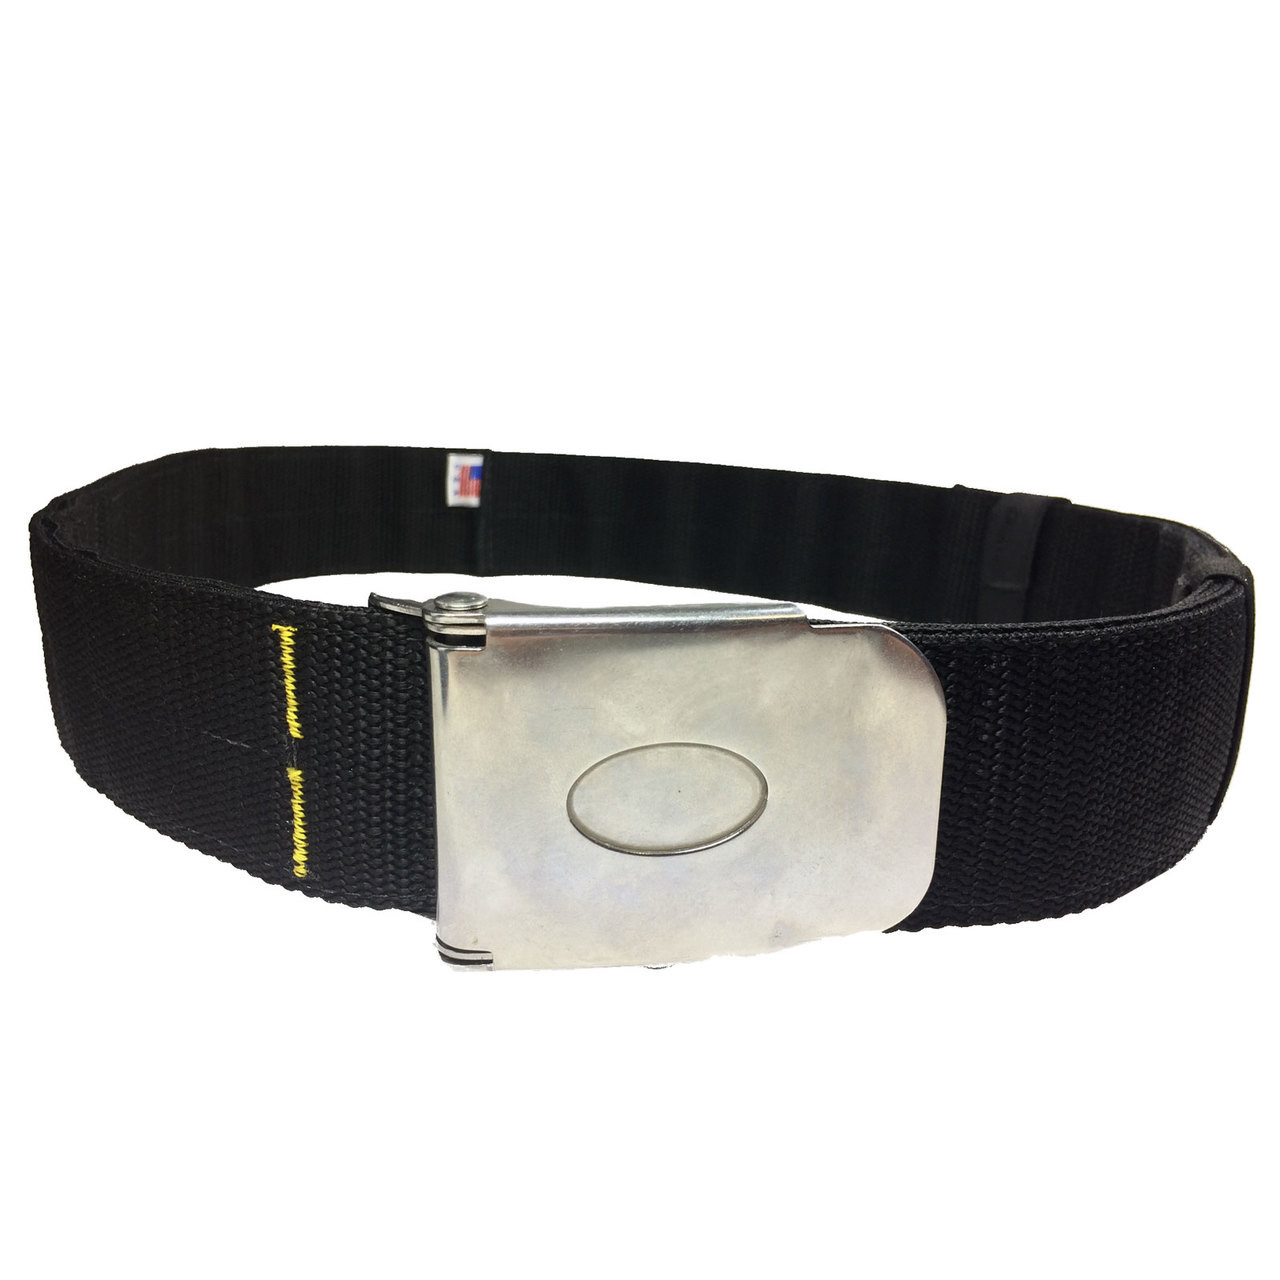 "Rockhopper Surf Belt XL (40""- 50"" Waist)"